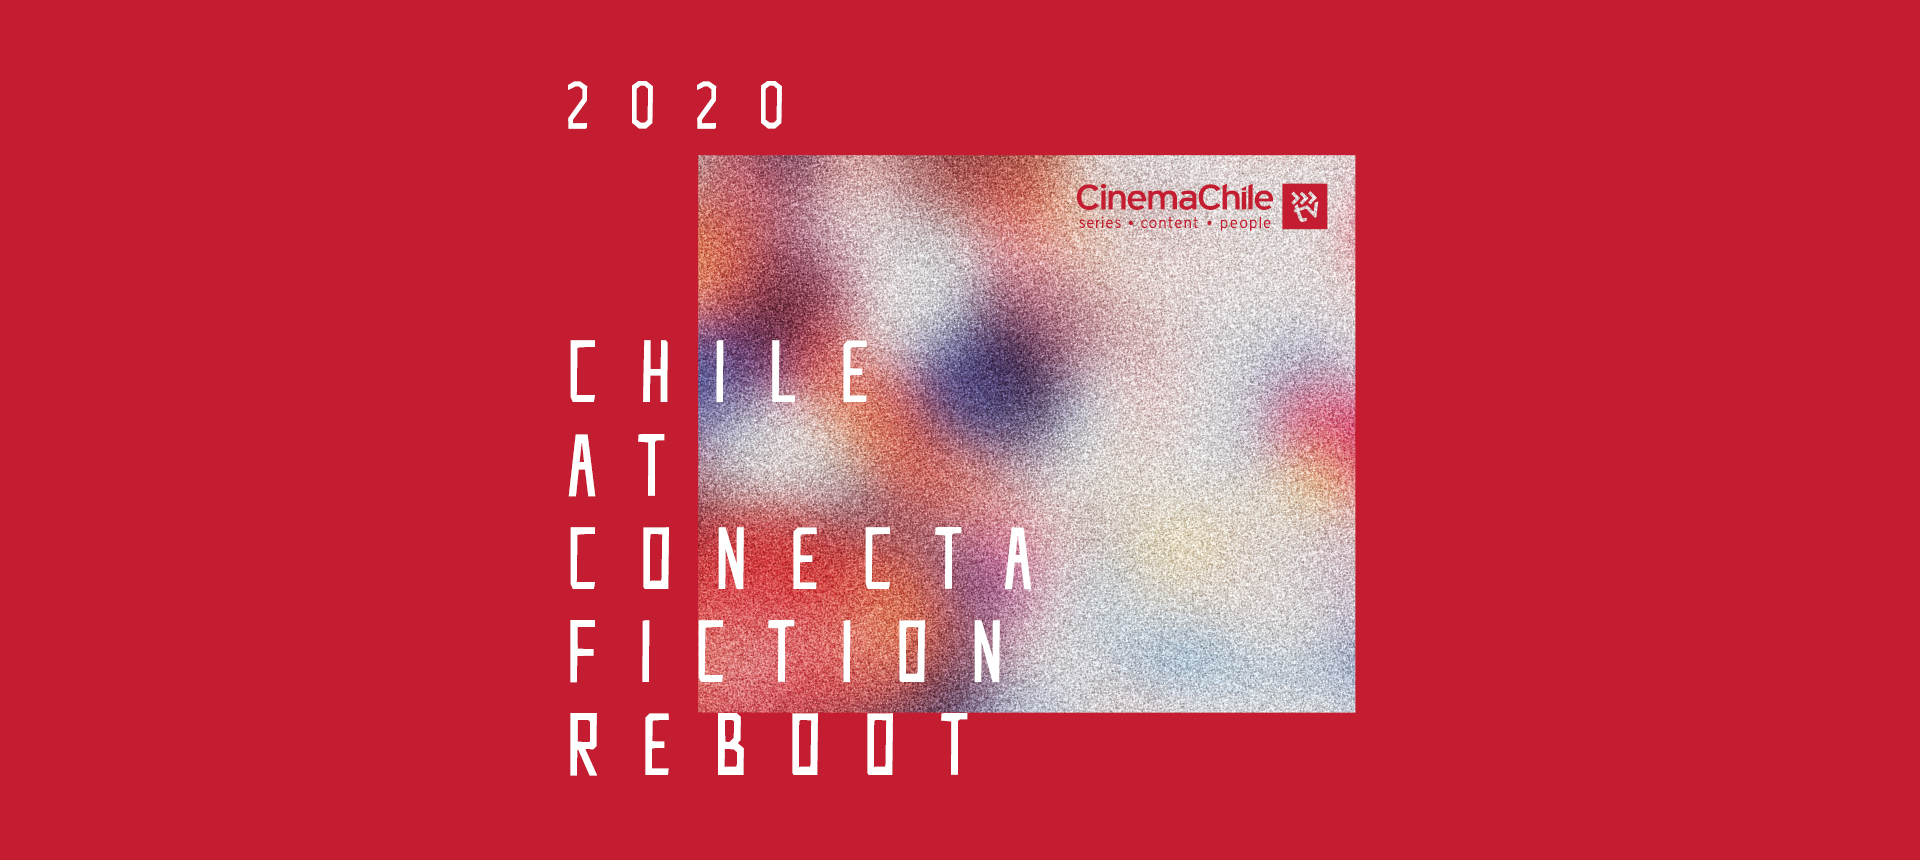 The Chilean Series that this 2020 will not leave behind and will look to sweep up at Conecta FICTION Reboot